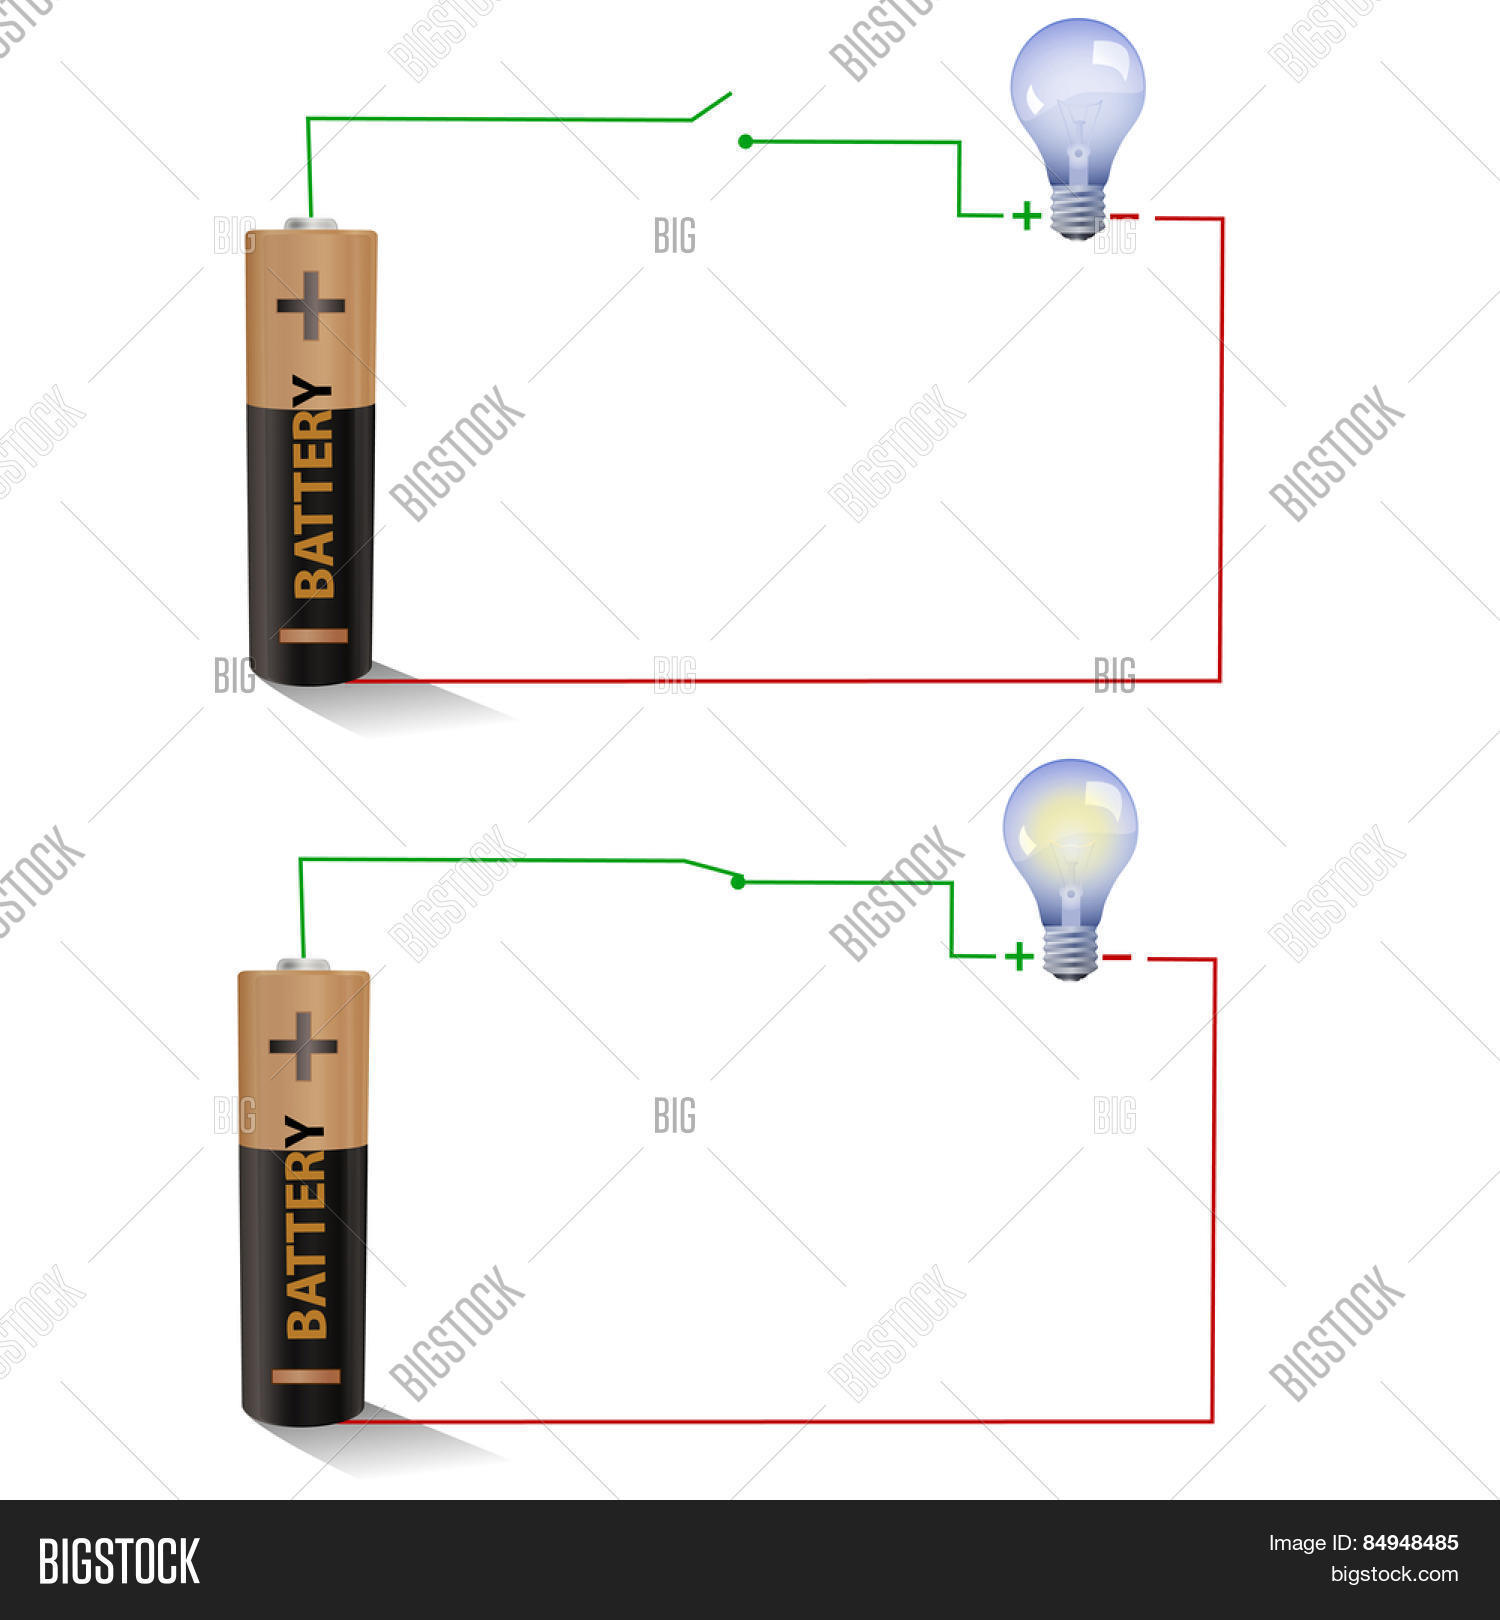 Electric Circuit Image Photo Free Trial Bigstock Parallel And Series With Lightbulbs Battery Showing Open Closed Switches Using A Light Bulb